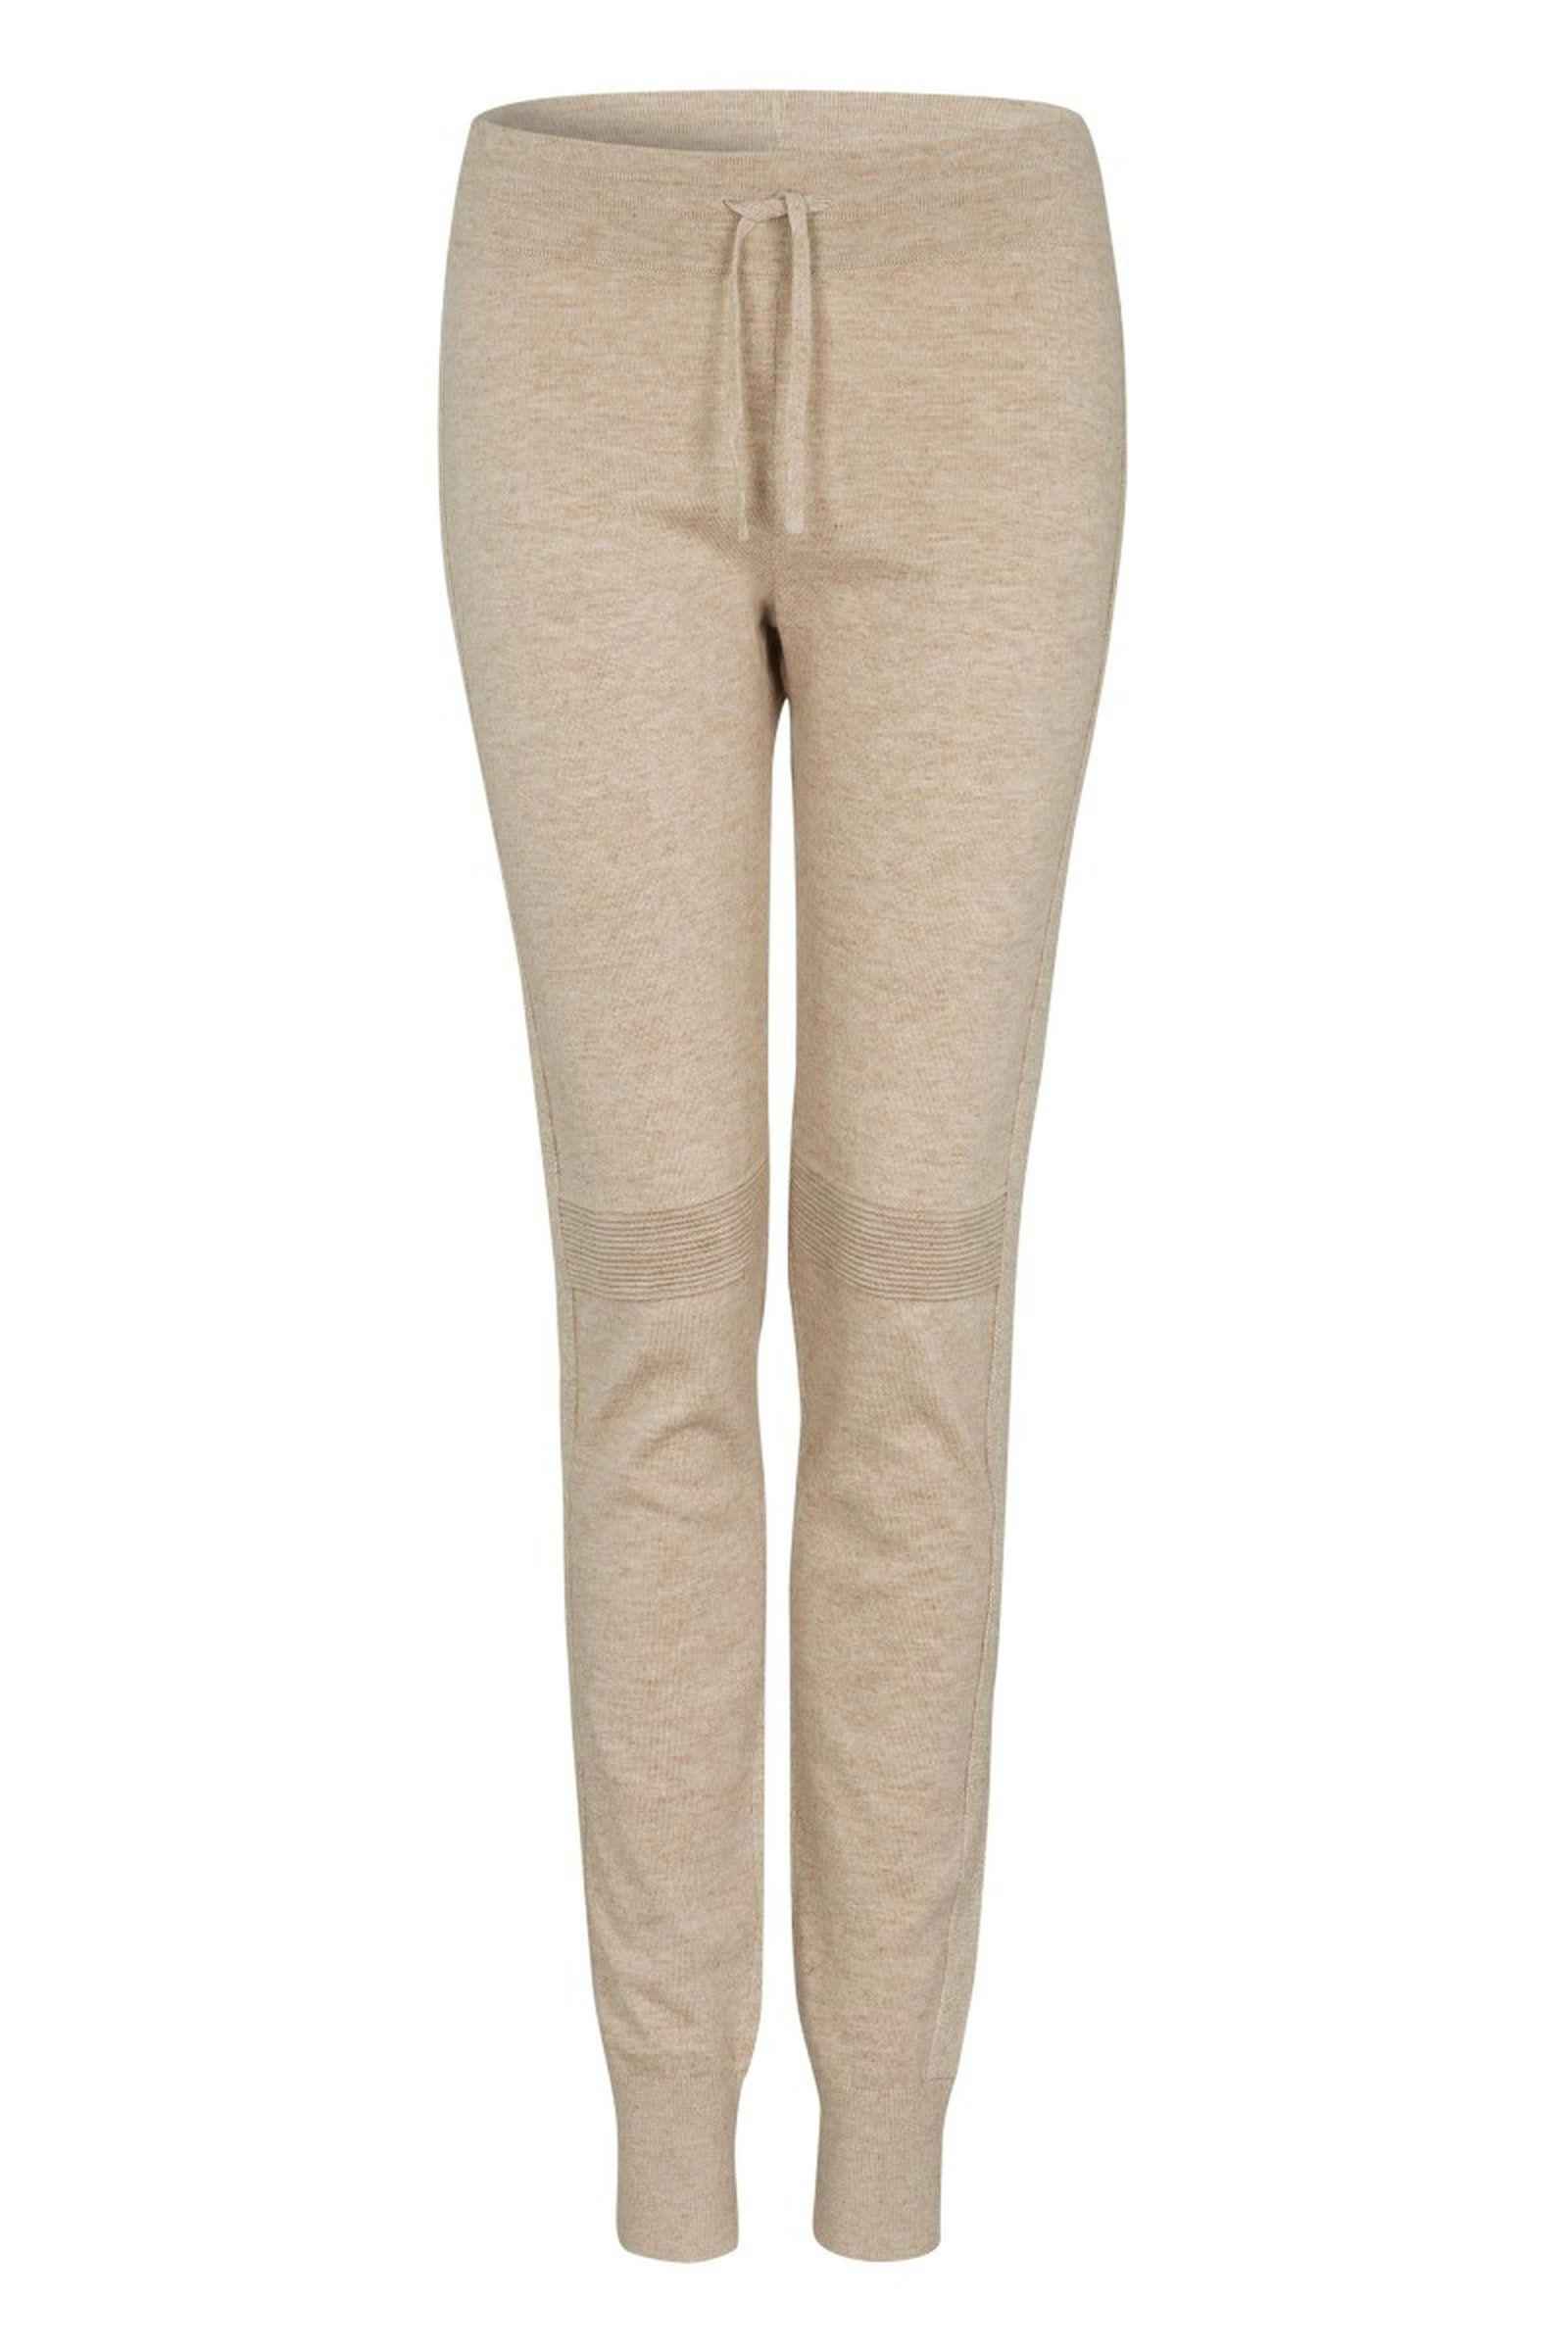 Oui - Knitted Trousers